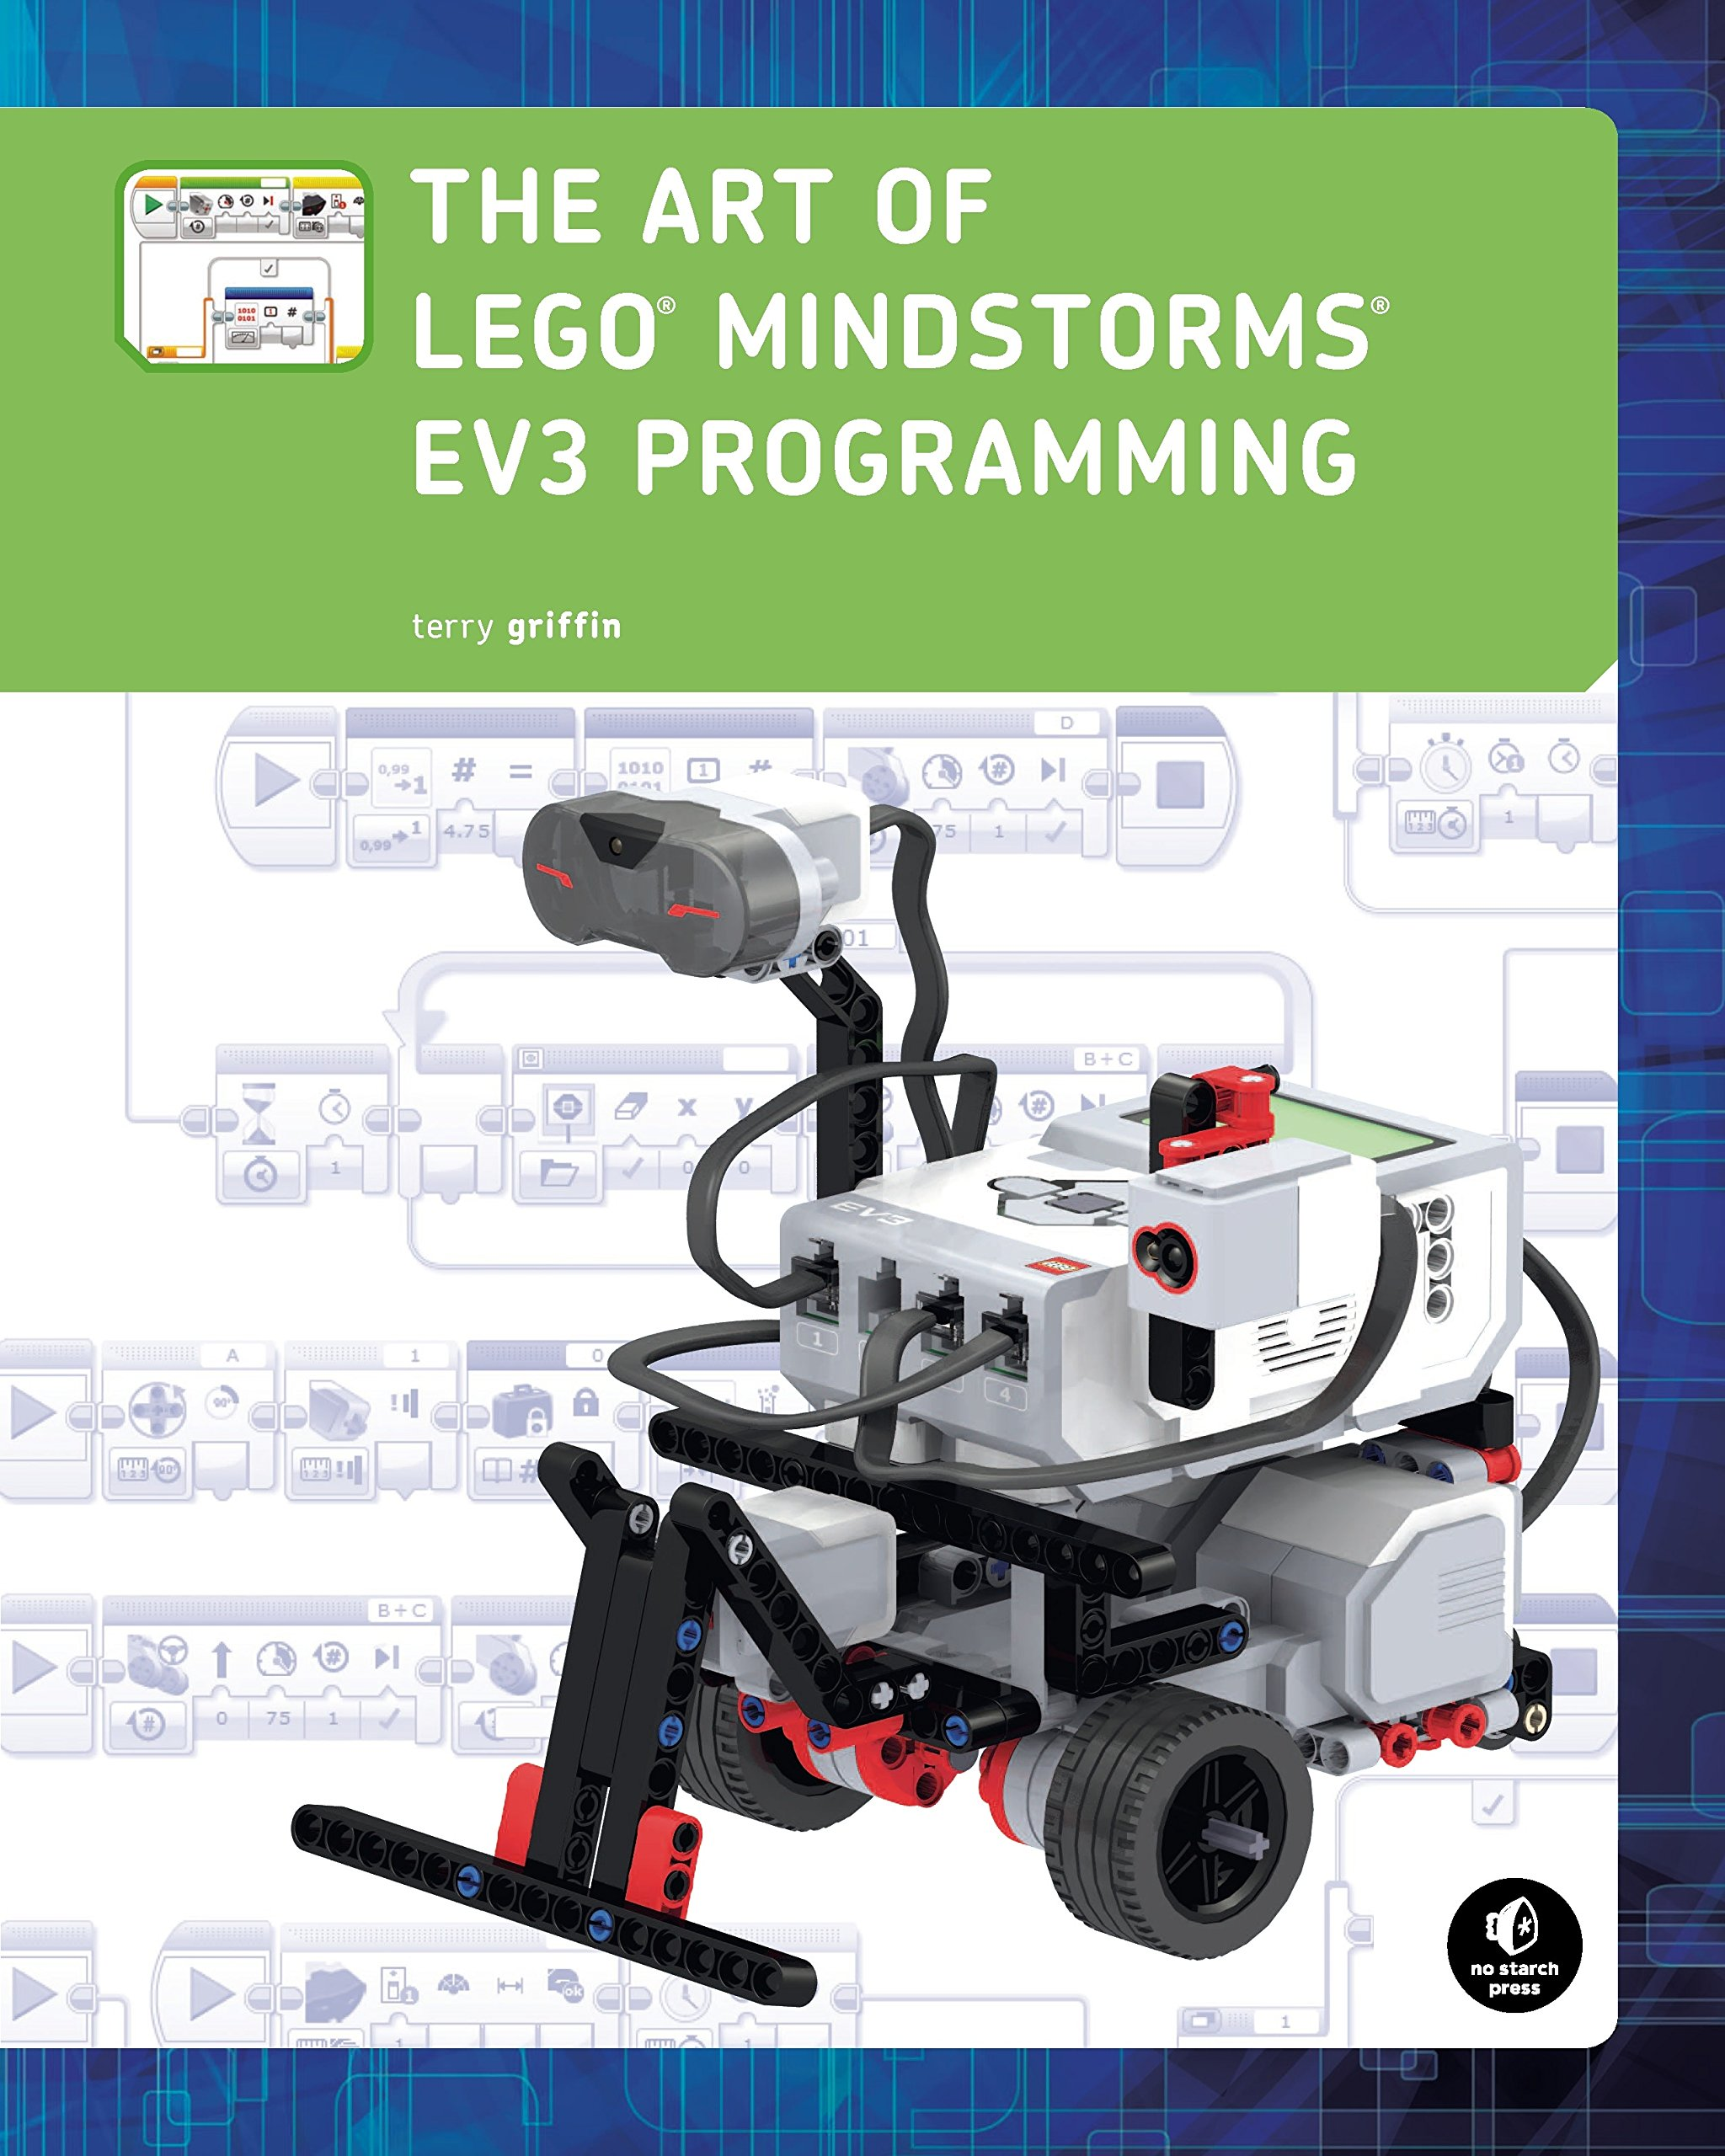 The Art of LEGO MINDSTORMS EV3 Programming (Full Color) by No Starch Press (Image #2)